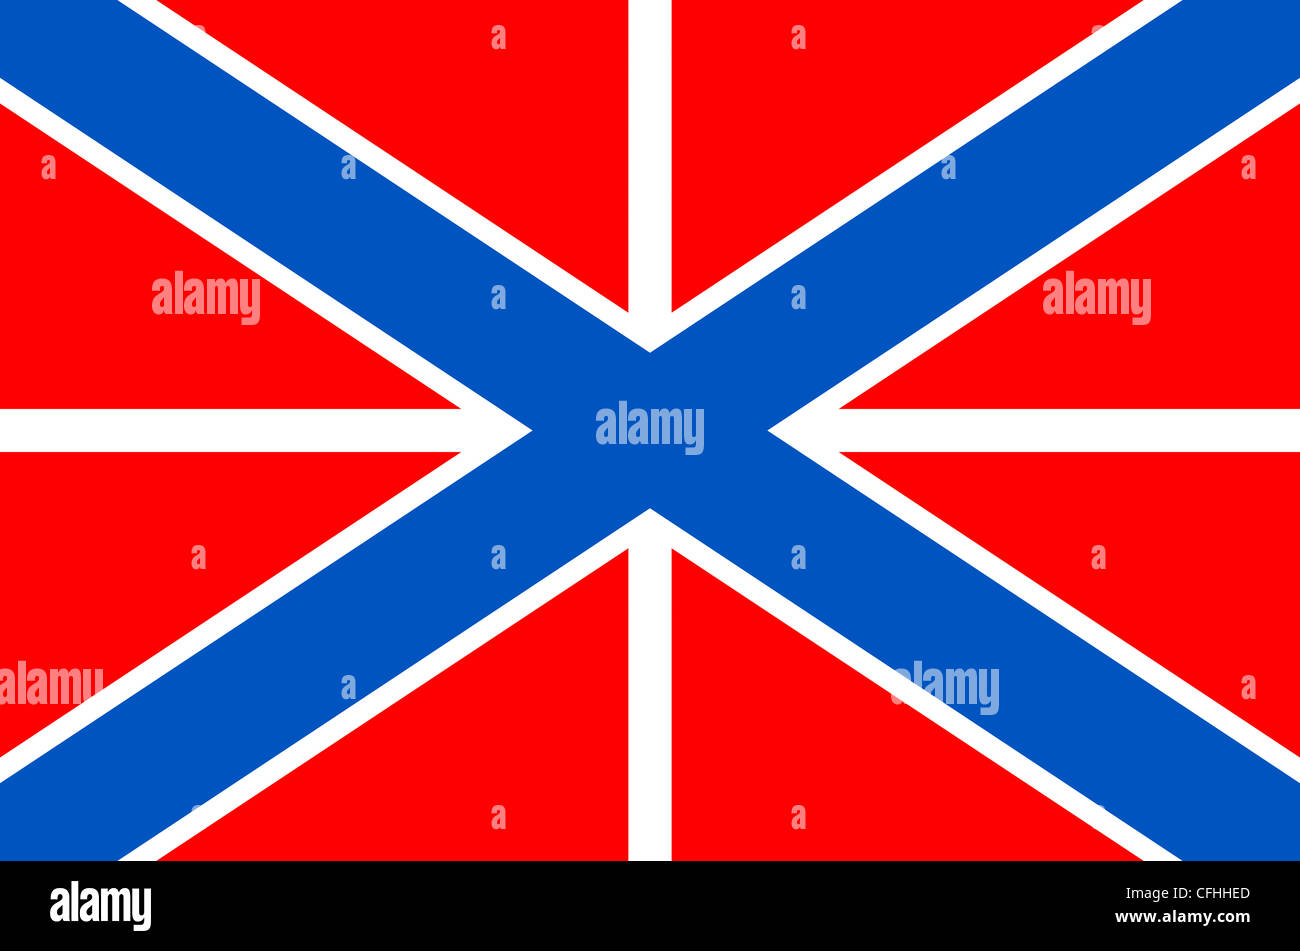 Naval Jack of the Russia Navy. - Stock Image